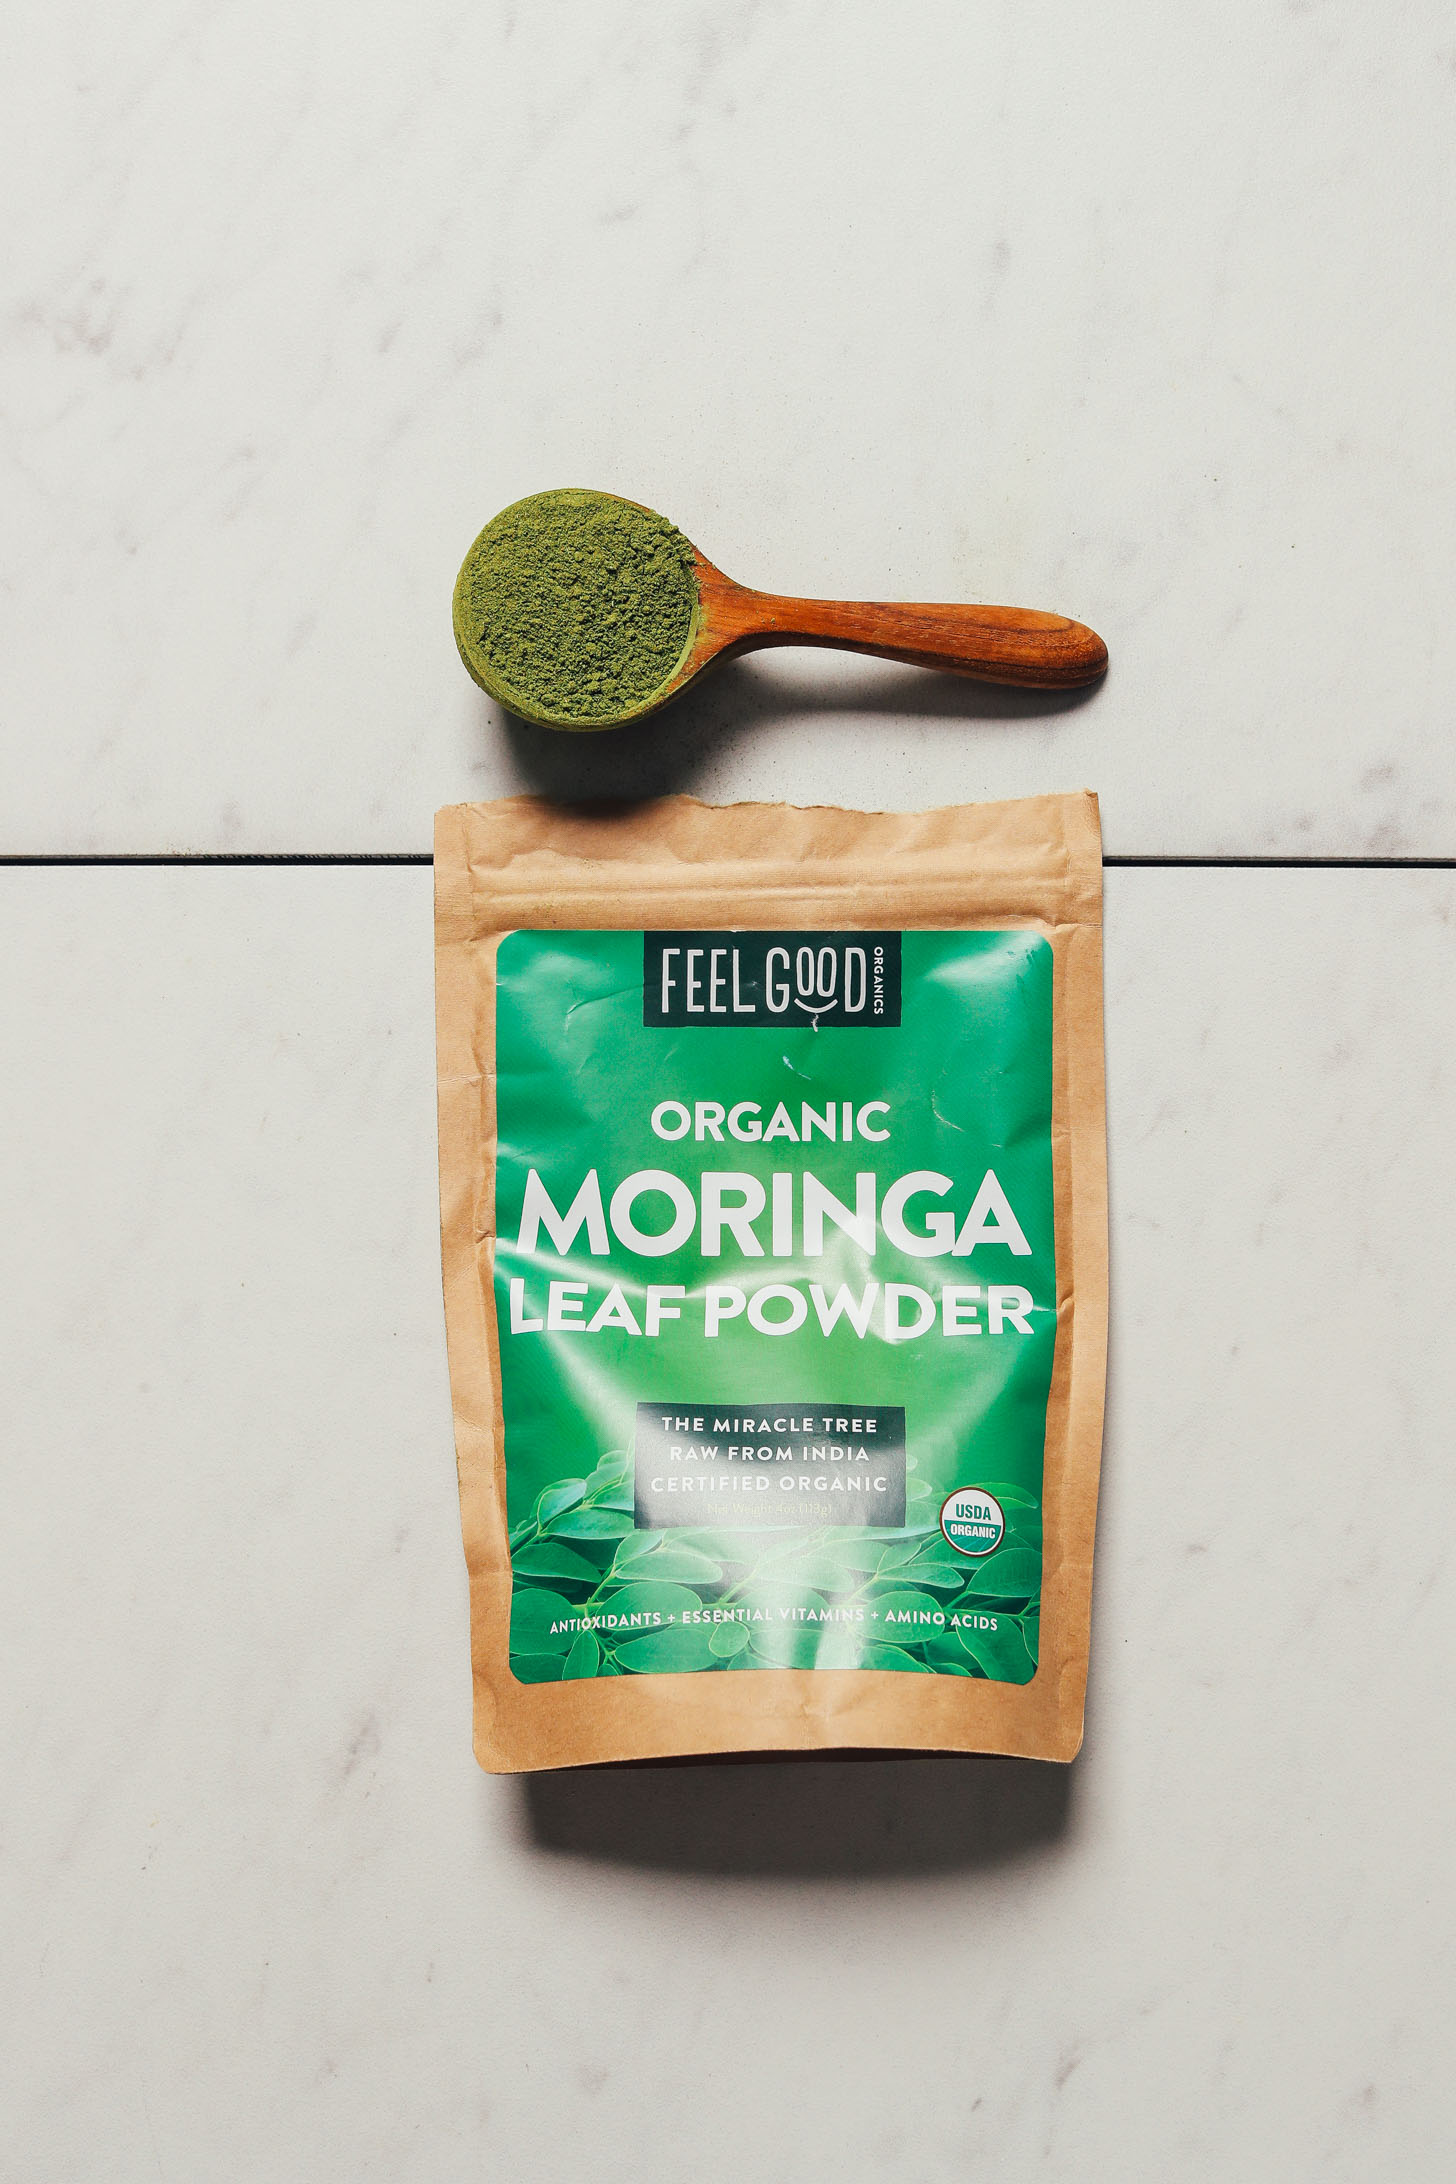 Bag and spoonful of Feel Good Moringa Powder for our review of the best moringa brands